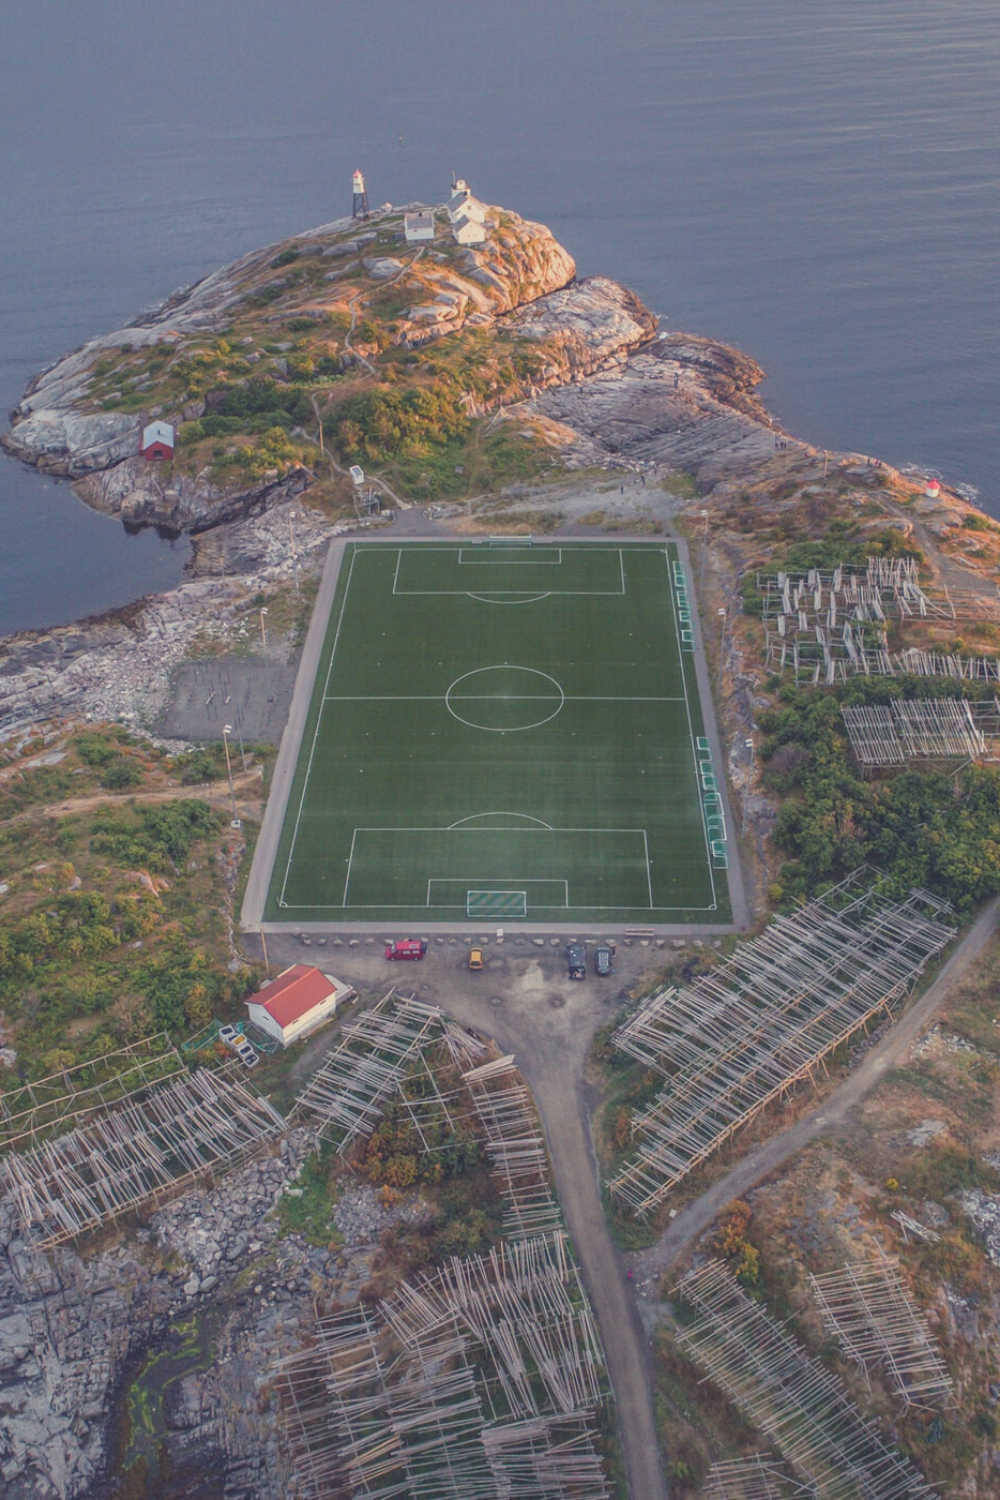 The Most Impressive Norwegian Football Grounds